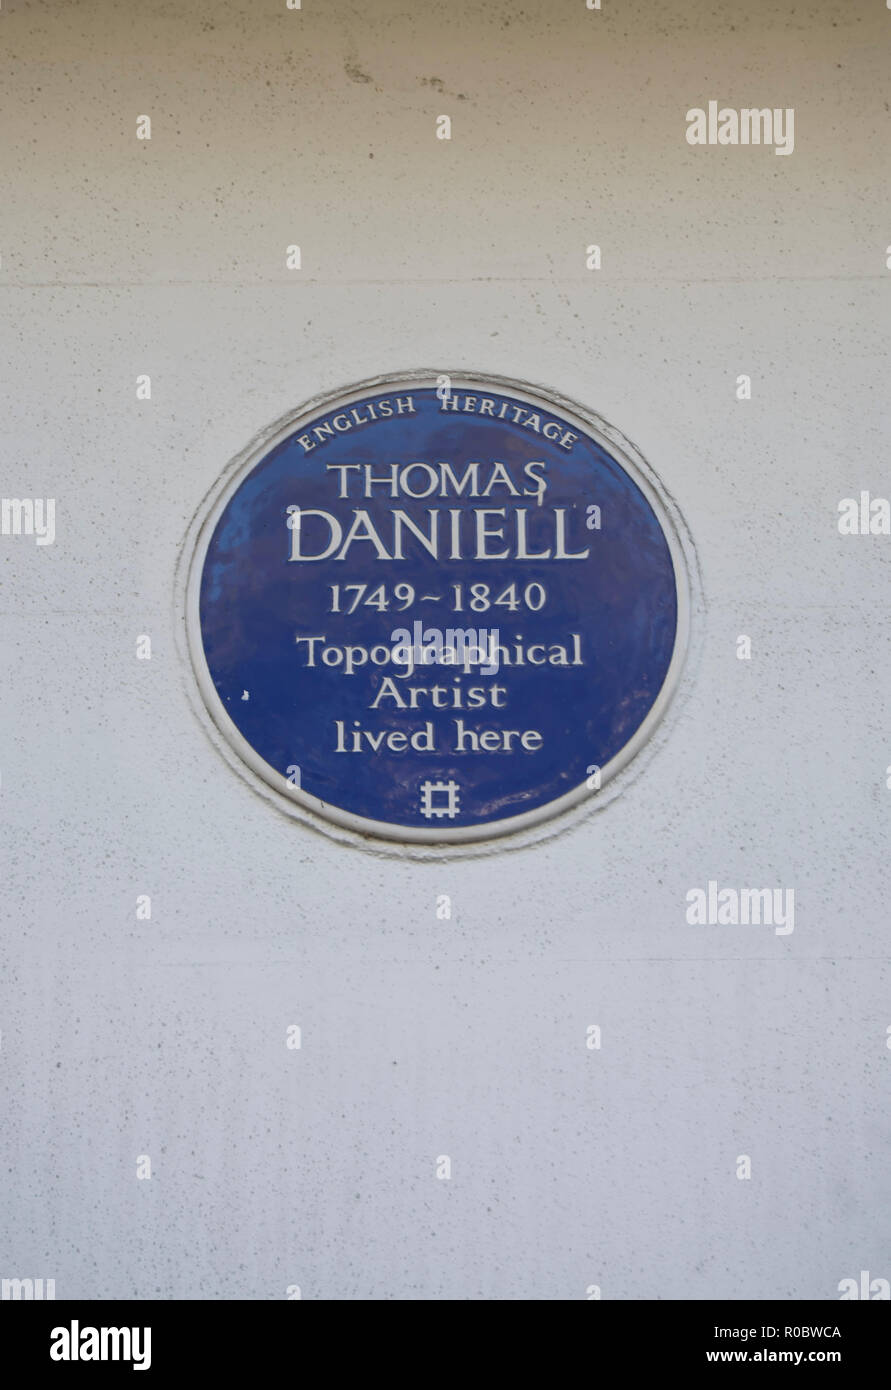 english heritage blue plaque marking a home of topographical artist thomas daniell, earl's terrace, kensington, london, england - Stock Image